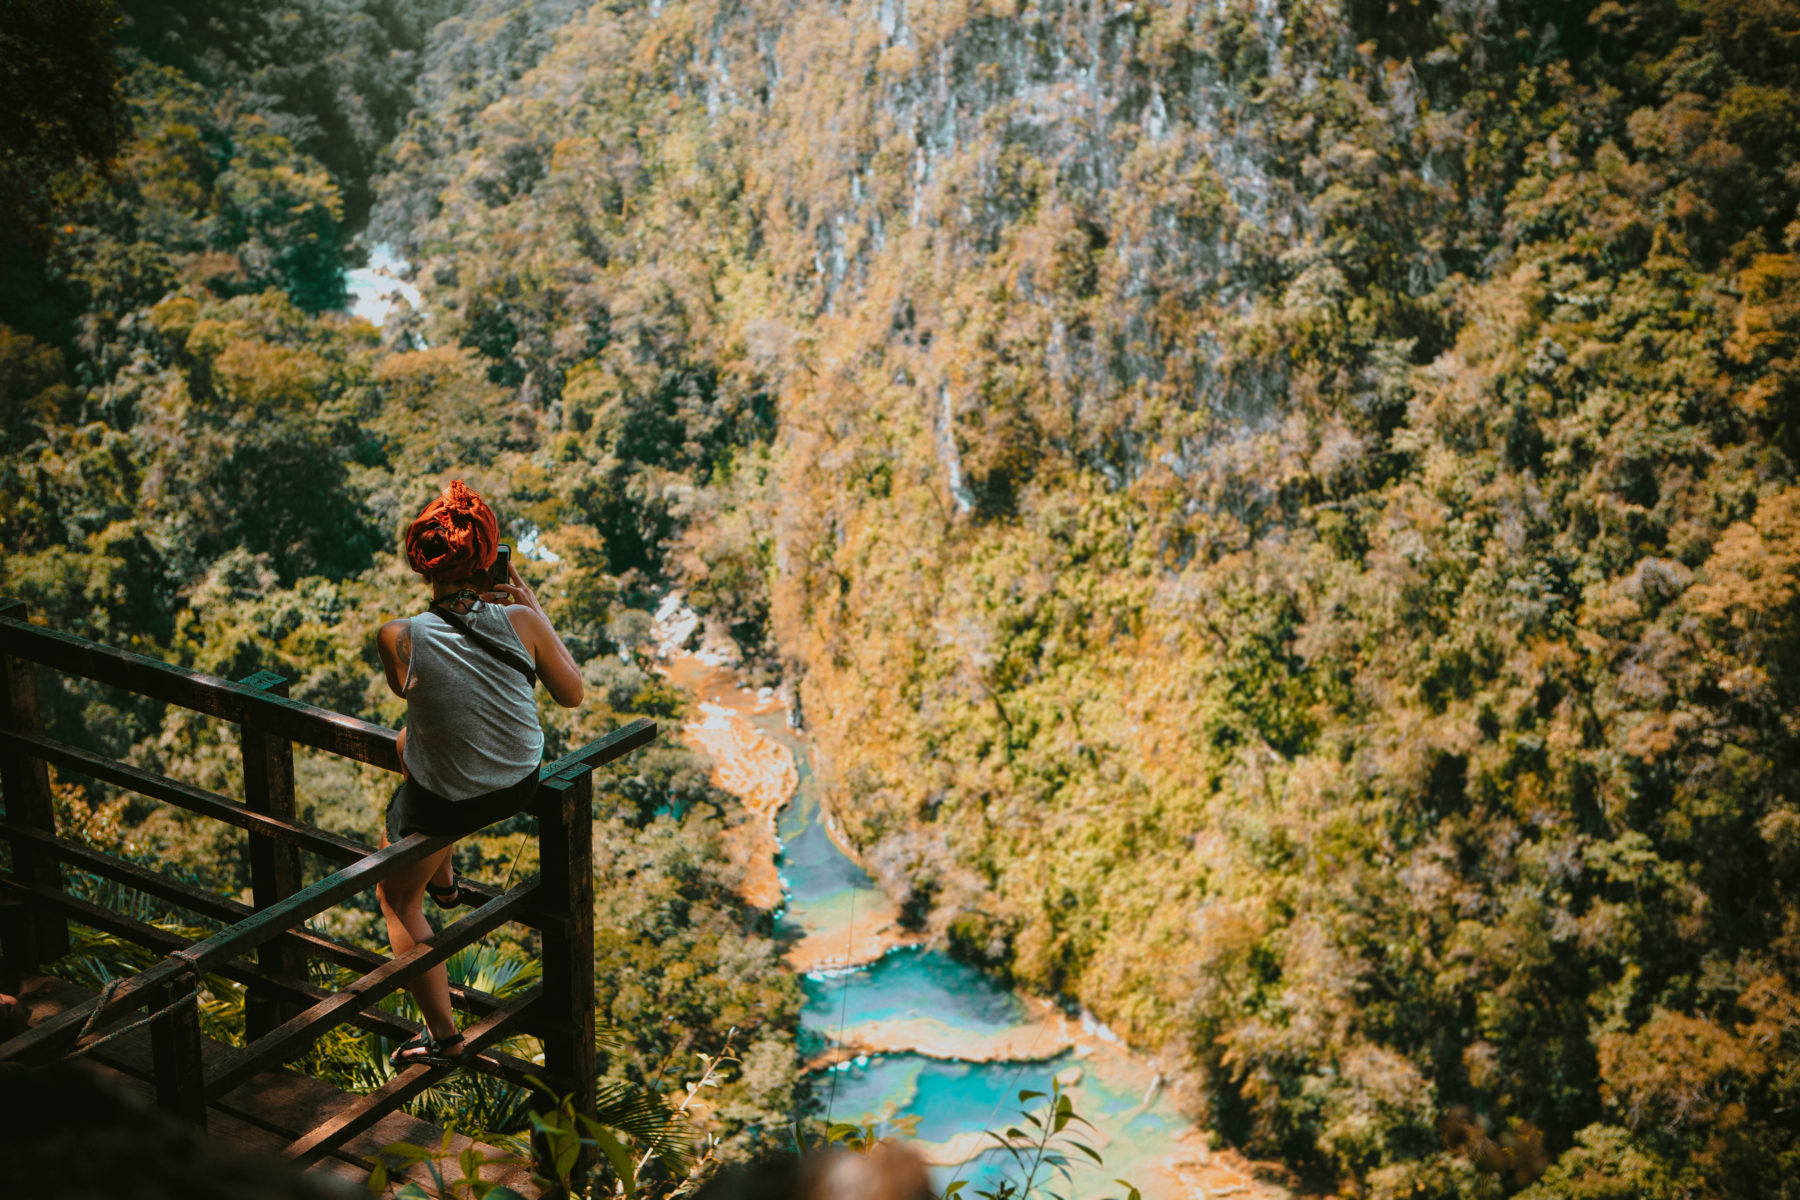 guatemala semuc champey turquoise pools jungle green humid swim adventure far away hidden paradise el retiro lodge in the jungle cacao pure natural pools